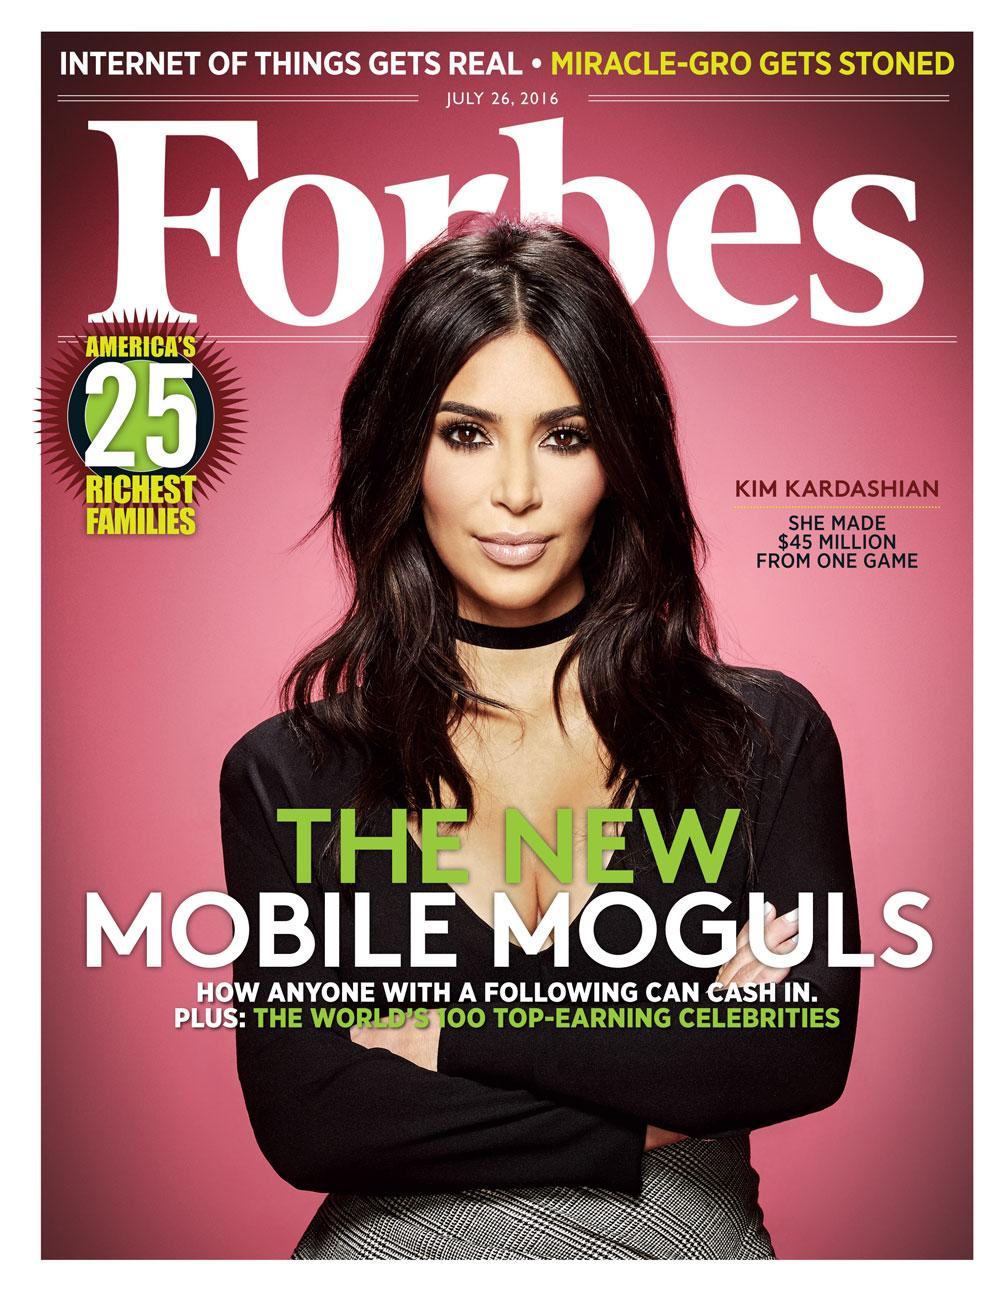 C:\Users\user\Desktop\Reacho\pics\0630_forbes-cover-072616-celebrity-kardashian_1000x1292.jpg